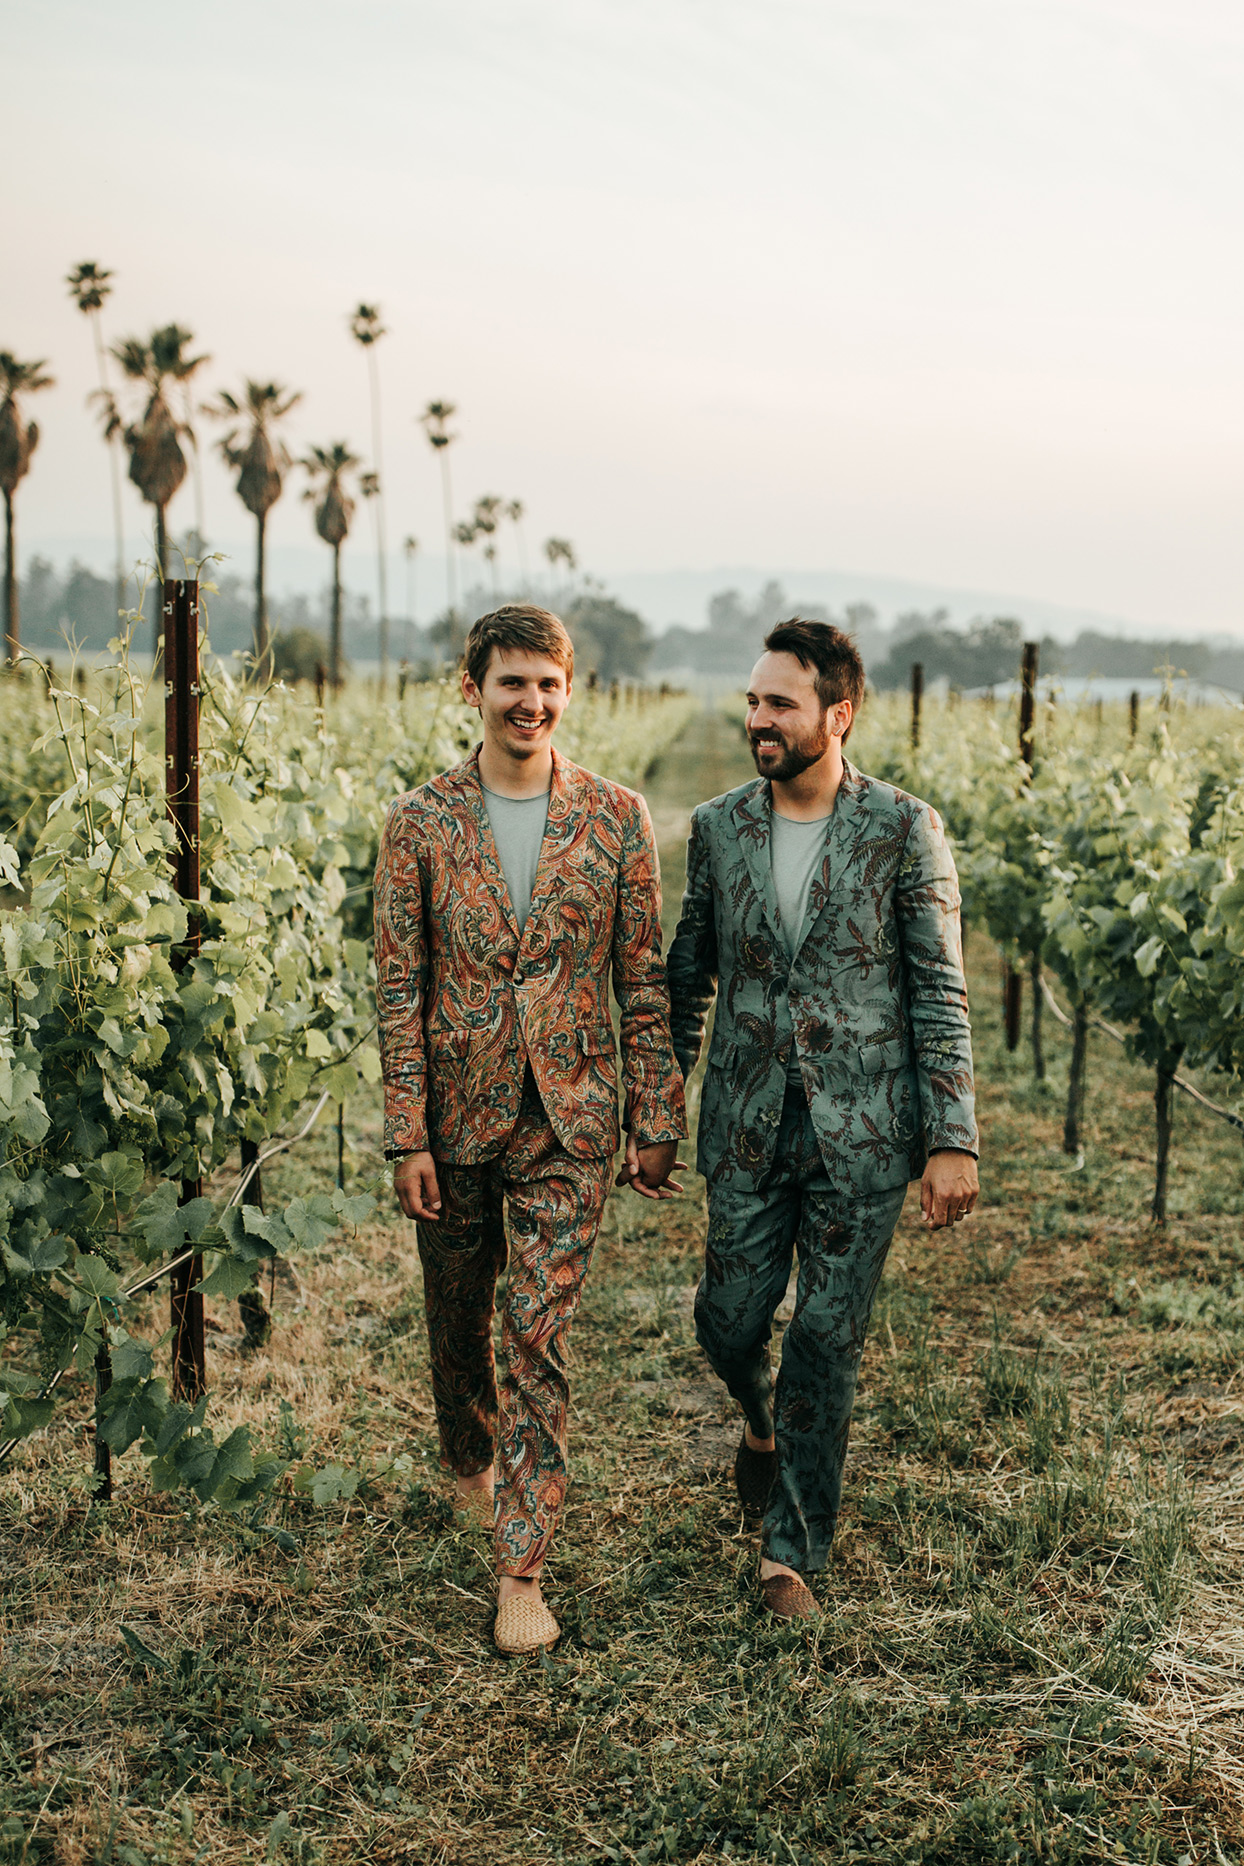 These Grooms and Their Wedding Party Wore the Coolest Patterned Suits at Their Laid-Back Sonoma Celebration